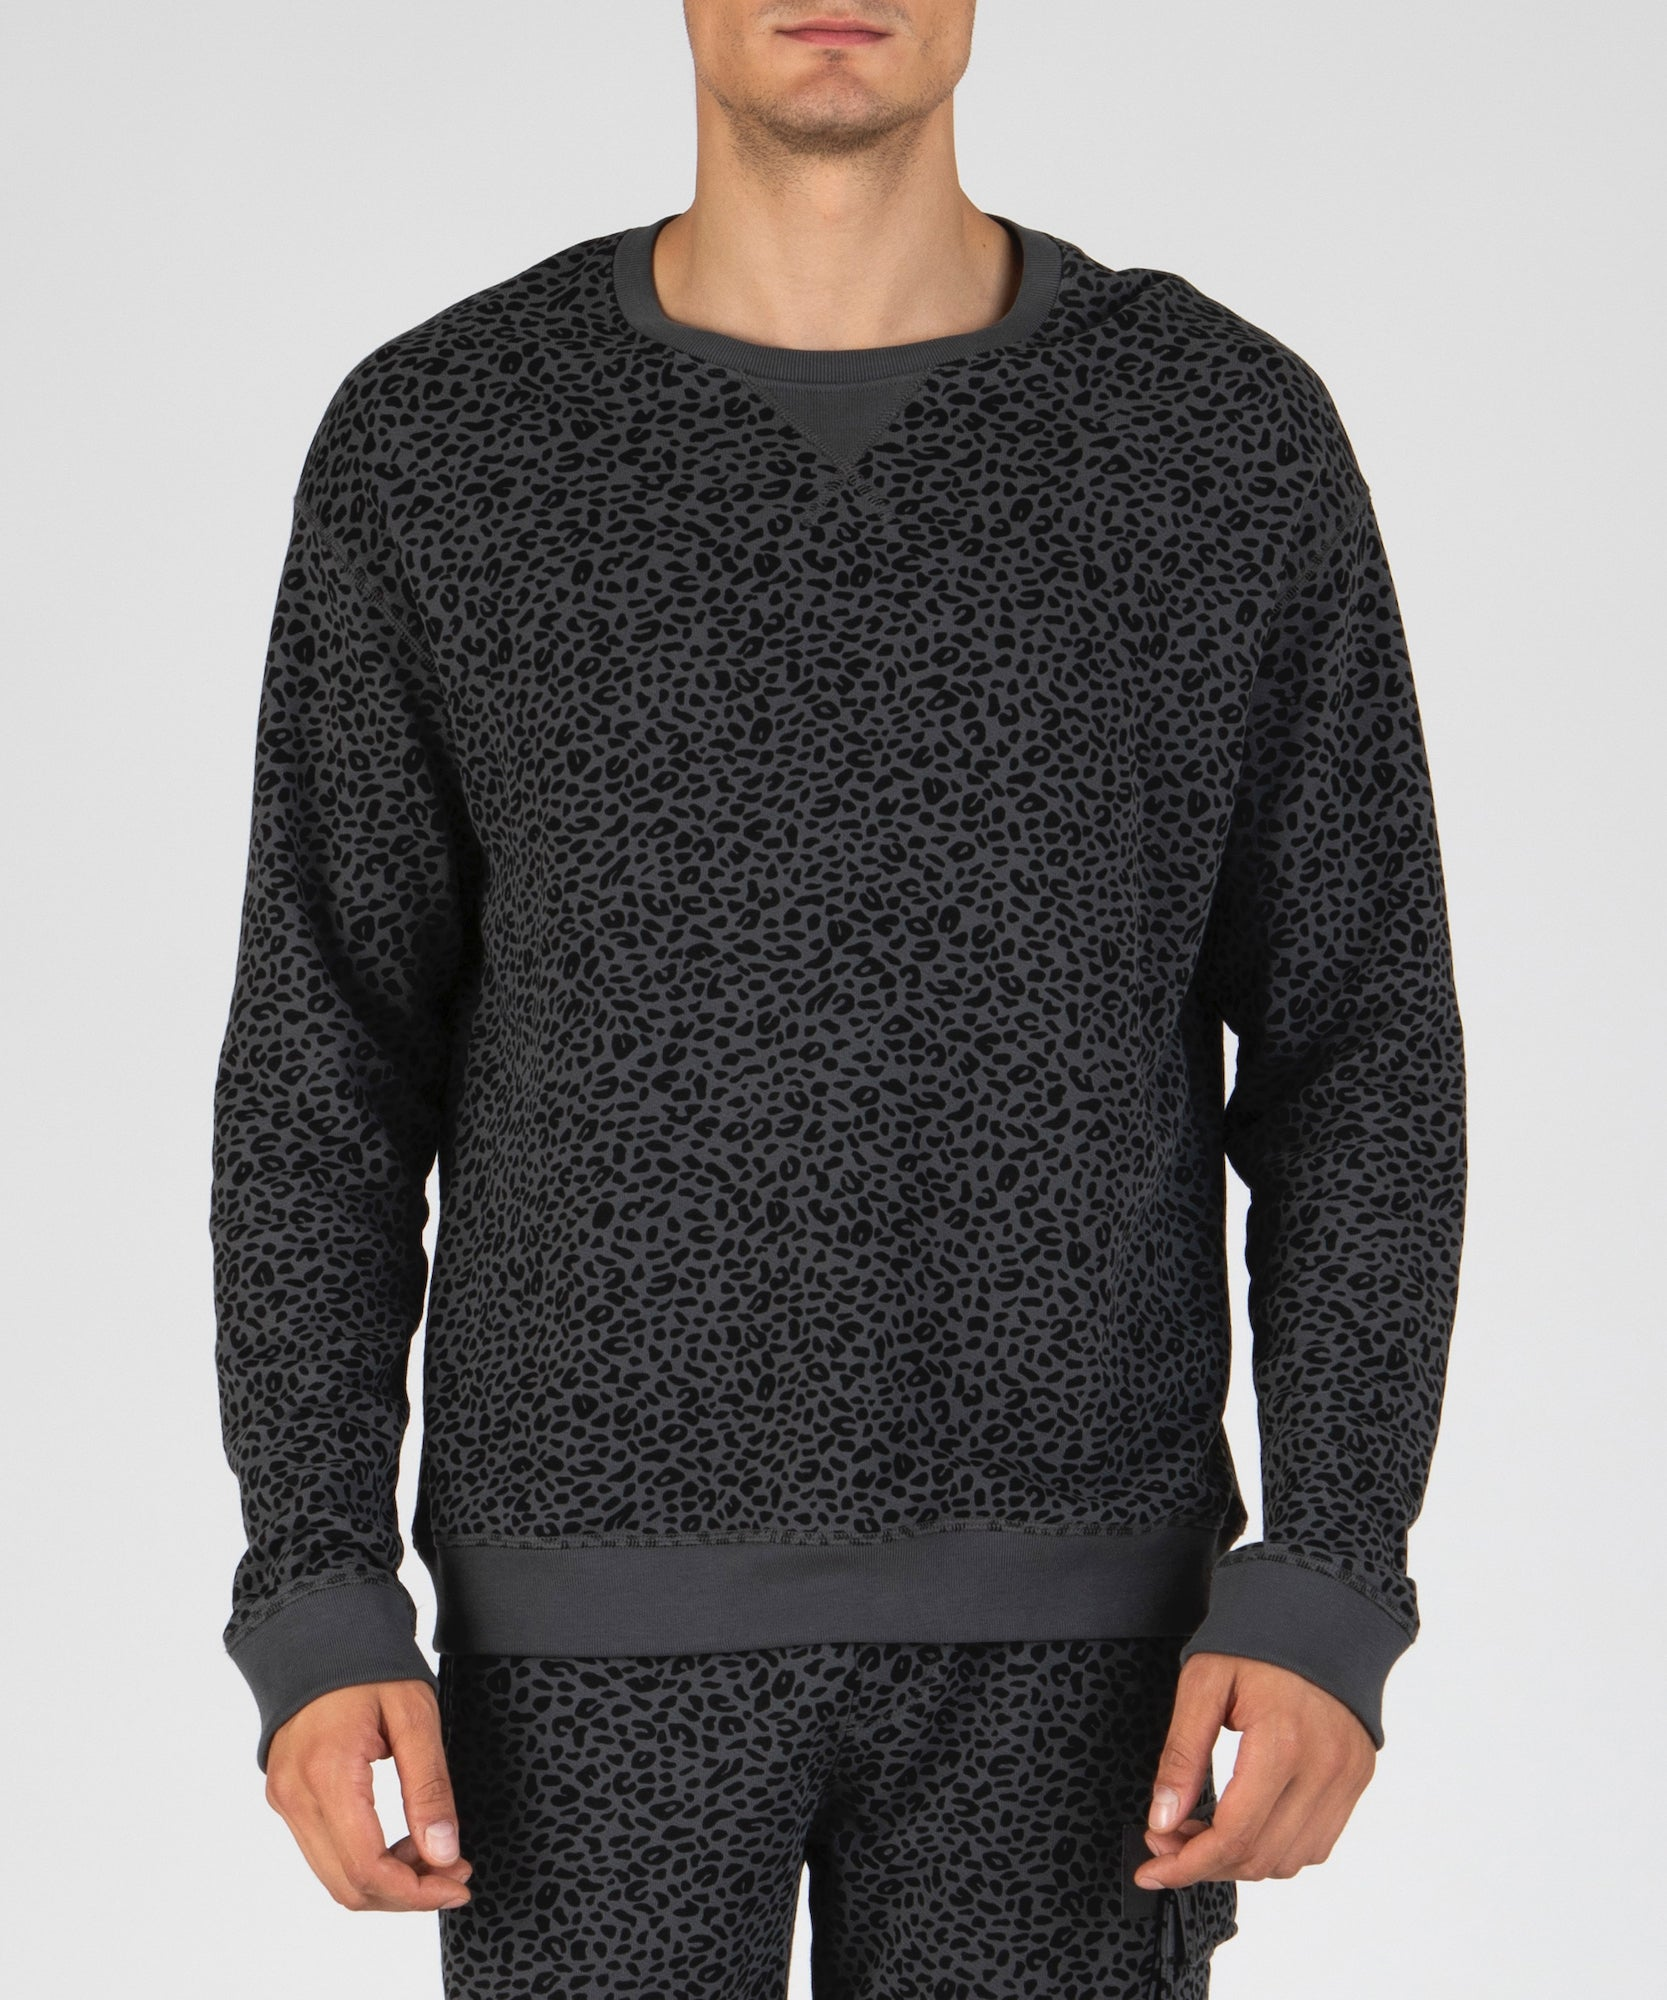 Asphalt and Black French Terry Mini Animal Print Sweatshirt - Men's Luxe Loungewear by ATM Anthony Thomas Melillo